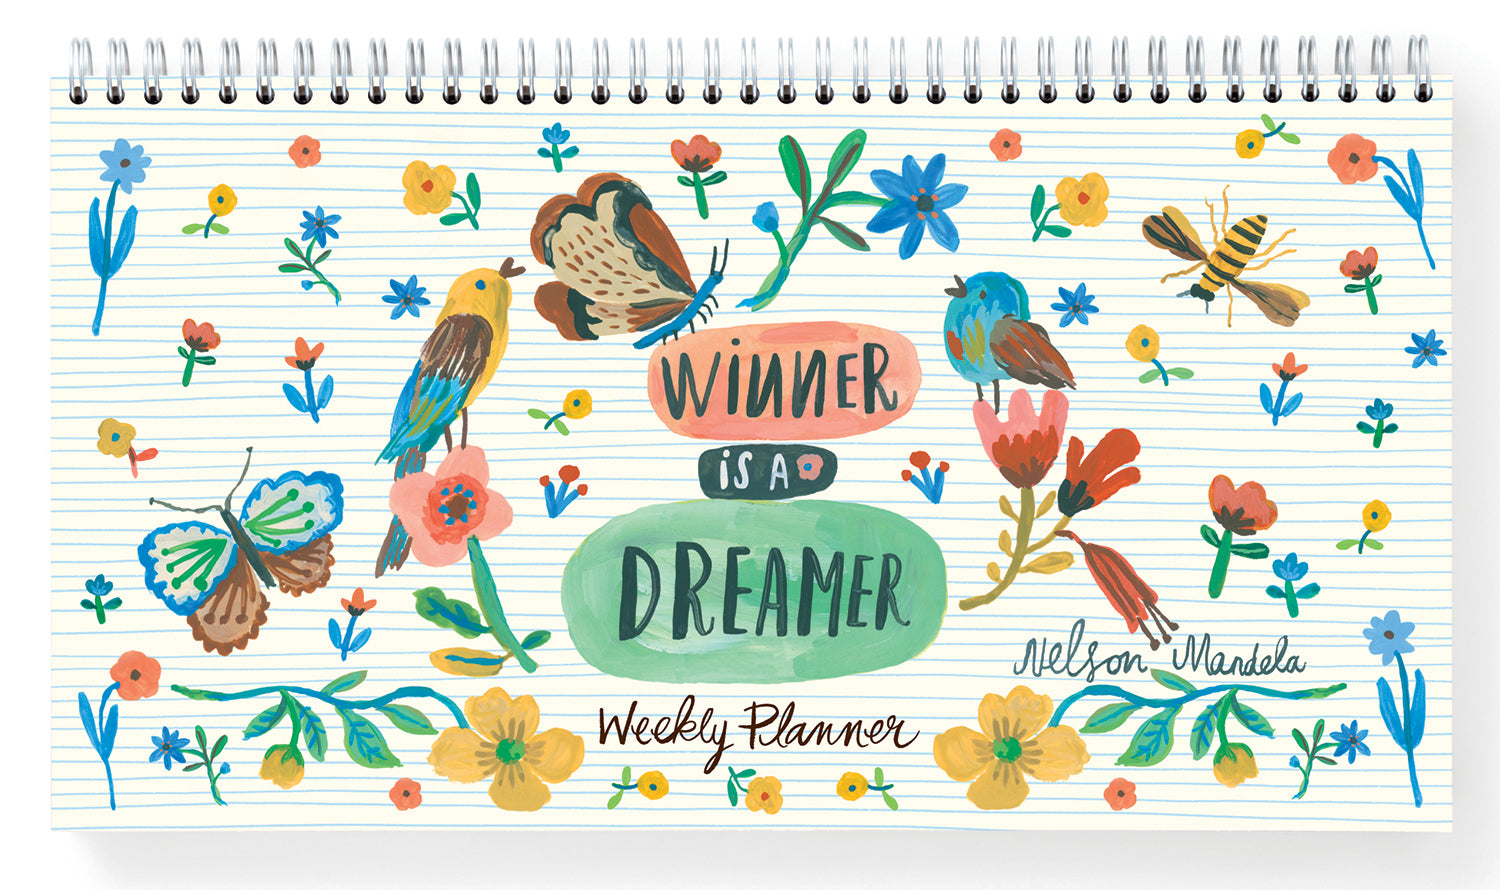 A Winner is a Dreamer Jumbo Journal